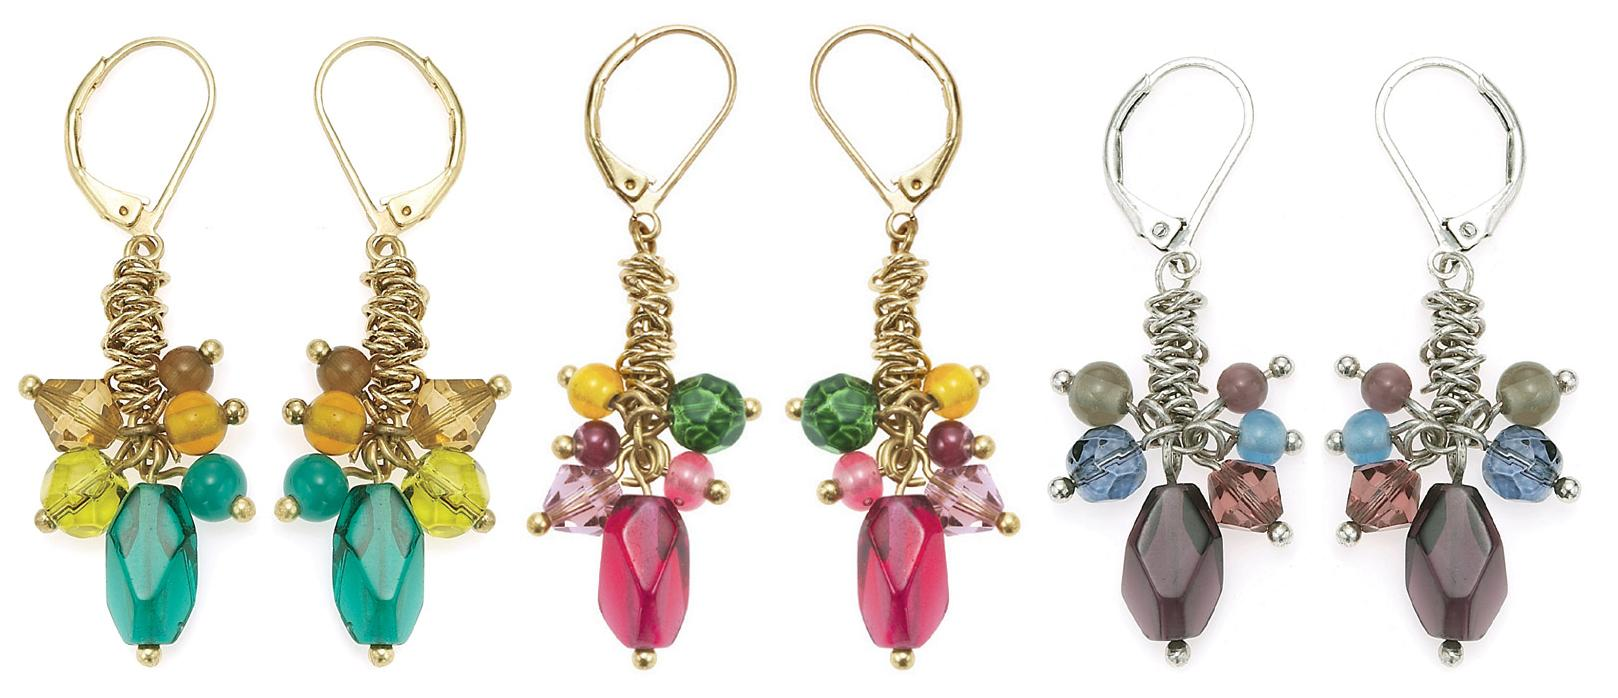 The Bohm Arcadian Opulence Cluster Earrings